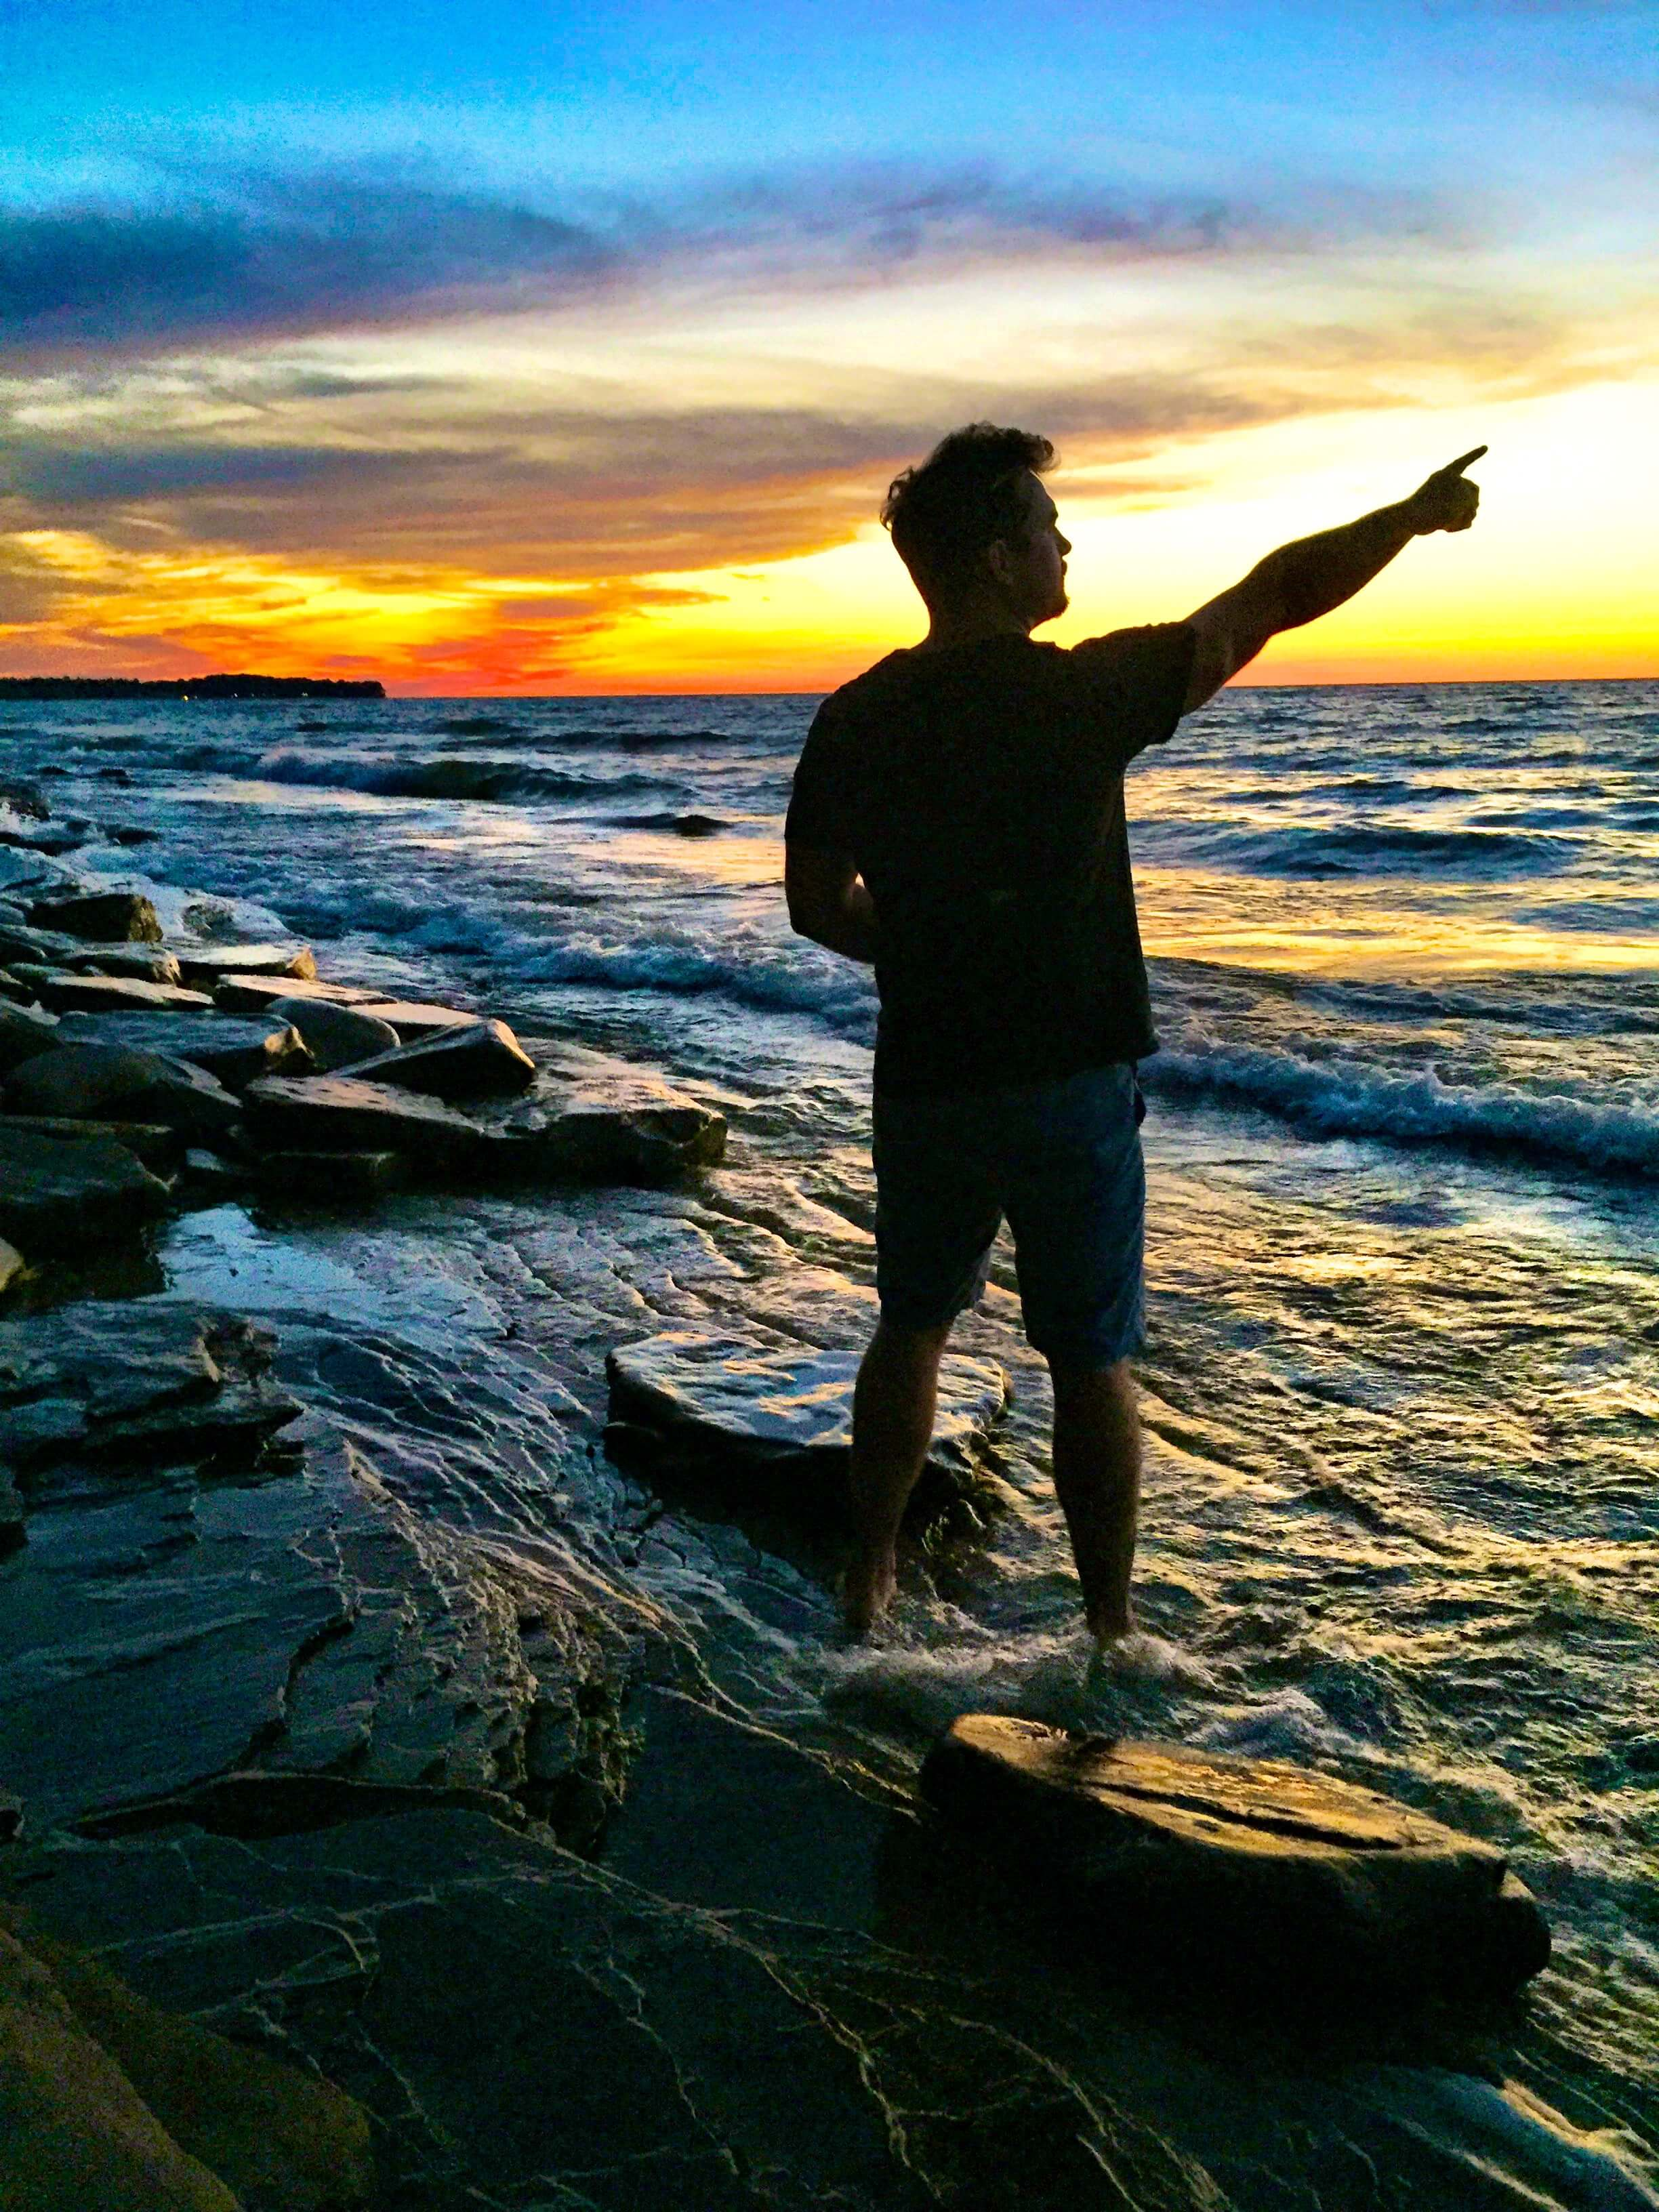 adventure-life-lessons-ocean-sunset-pointing